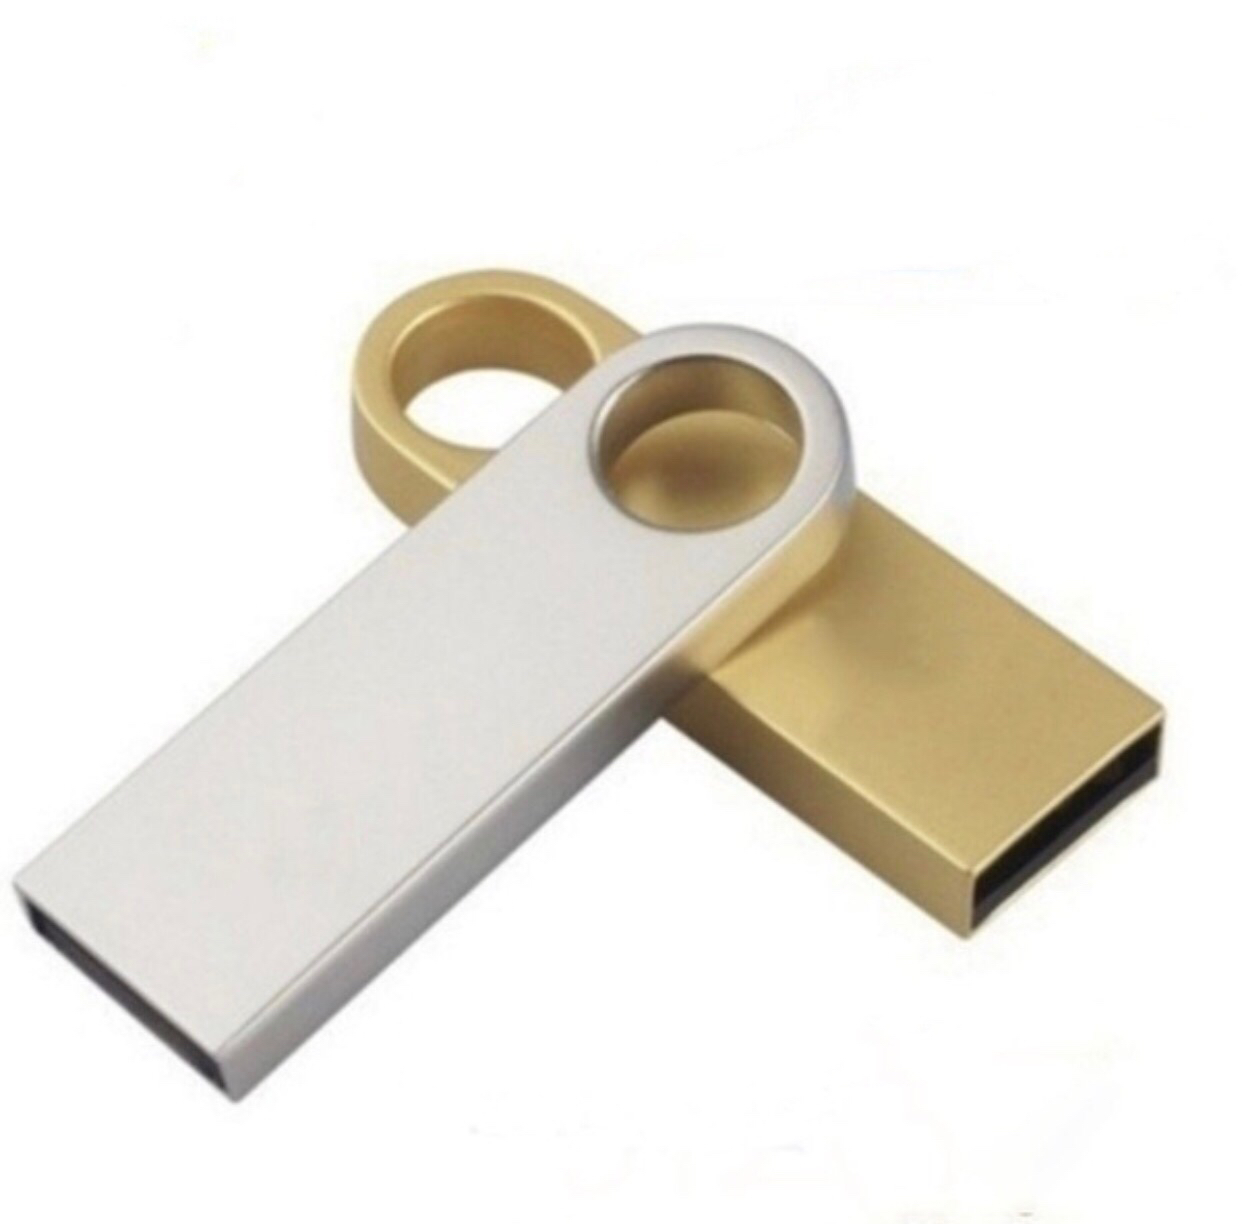 Factory price flash drive usb c 3.0 1tb wholesale